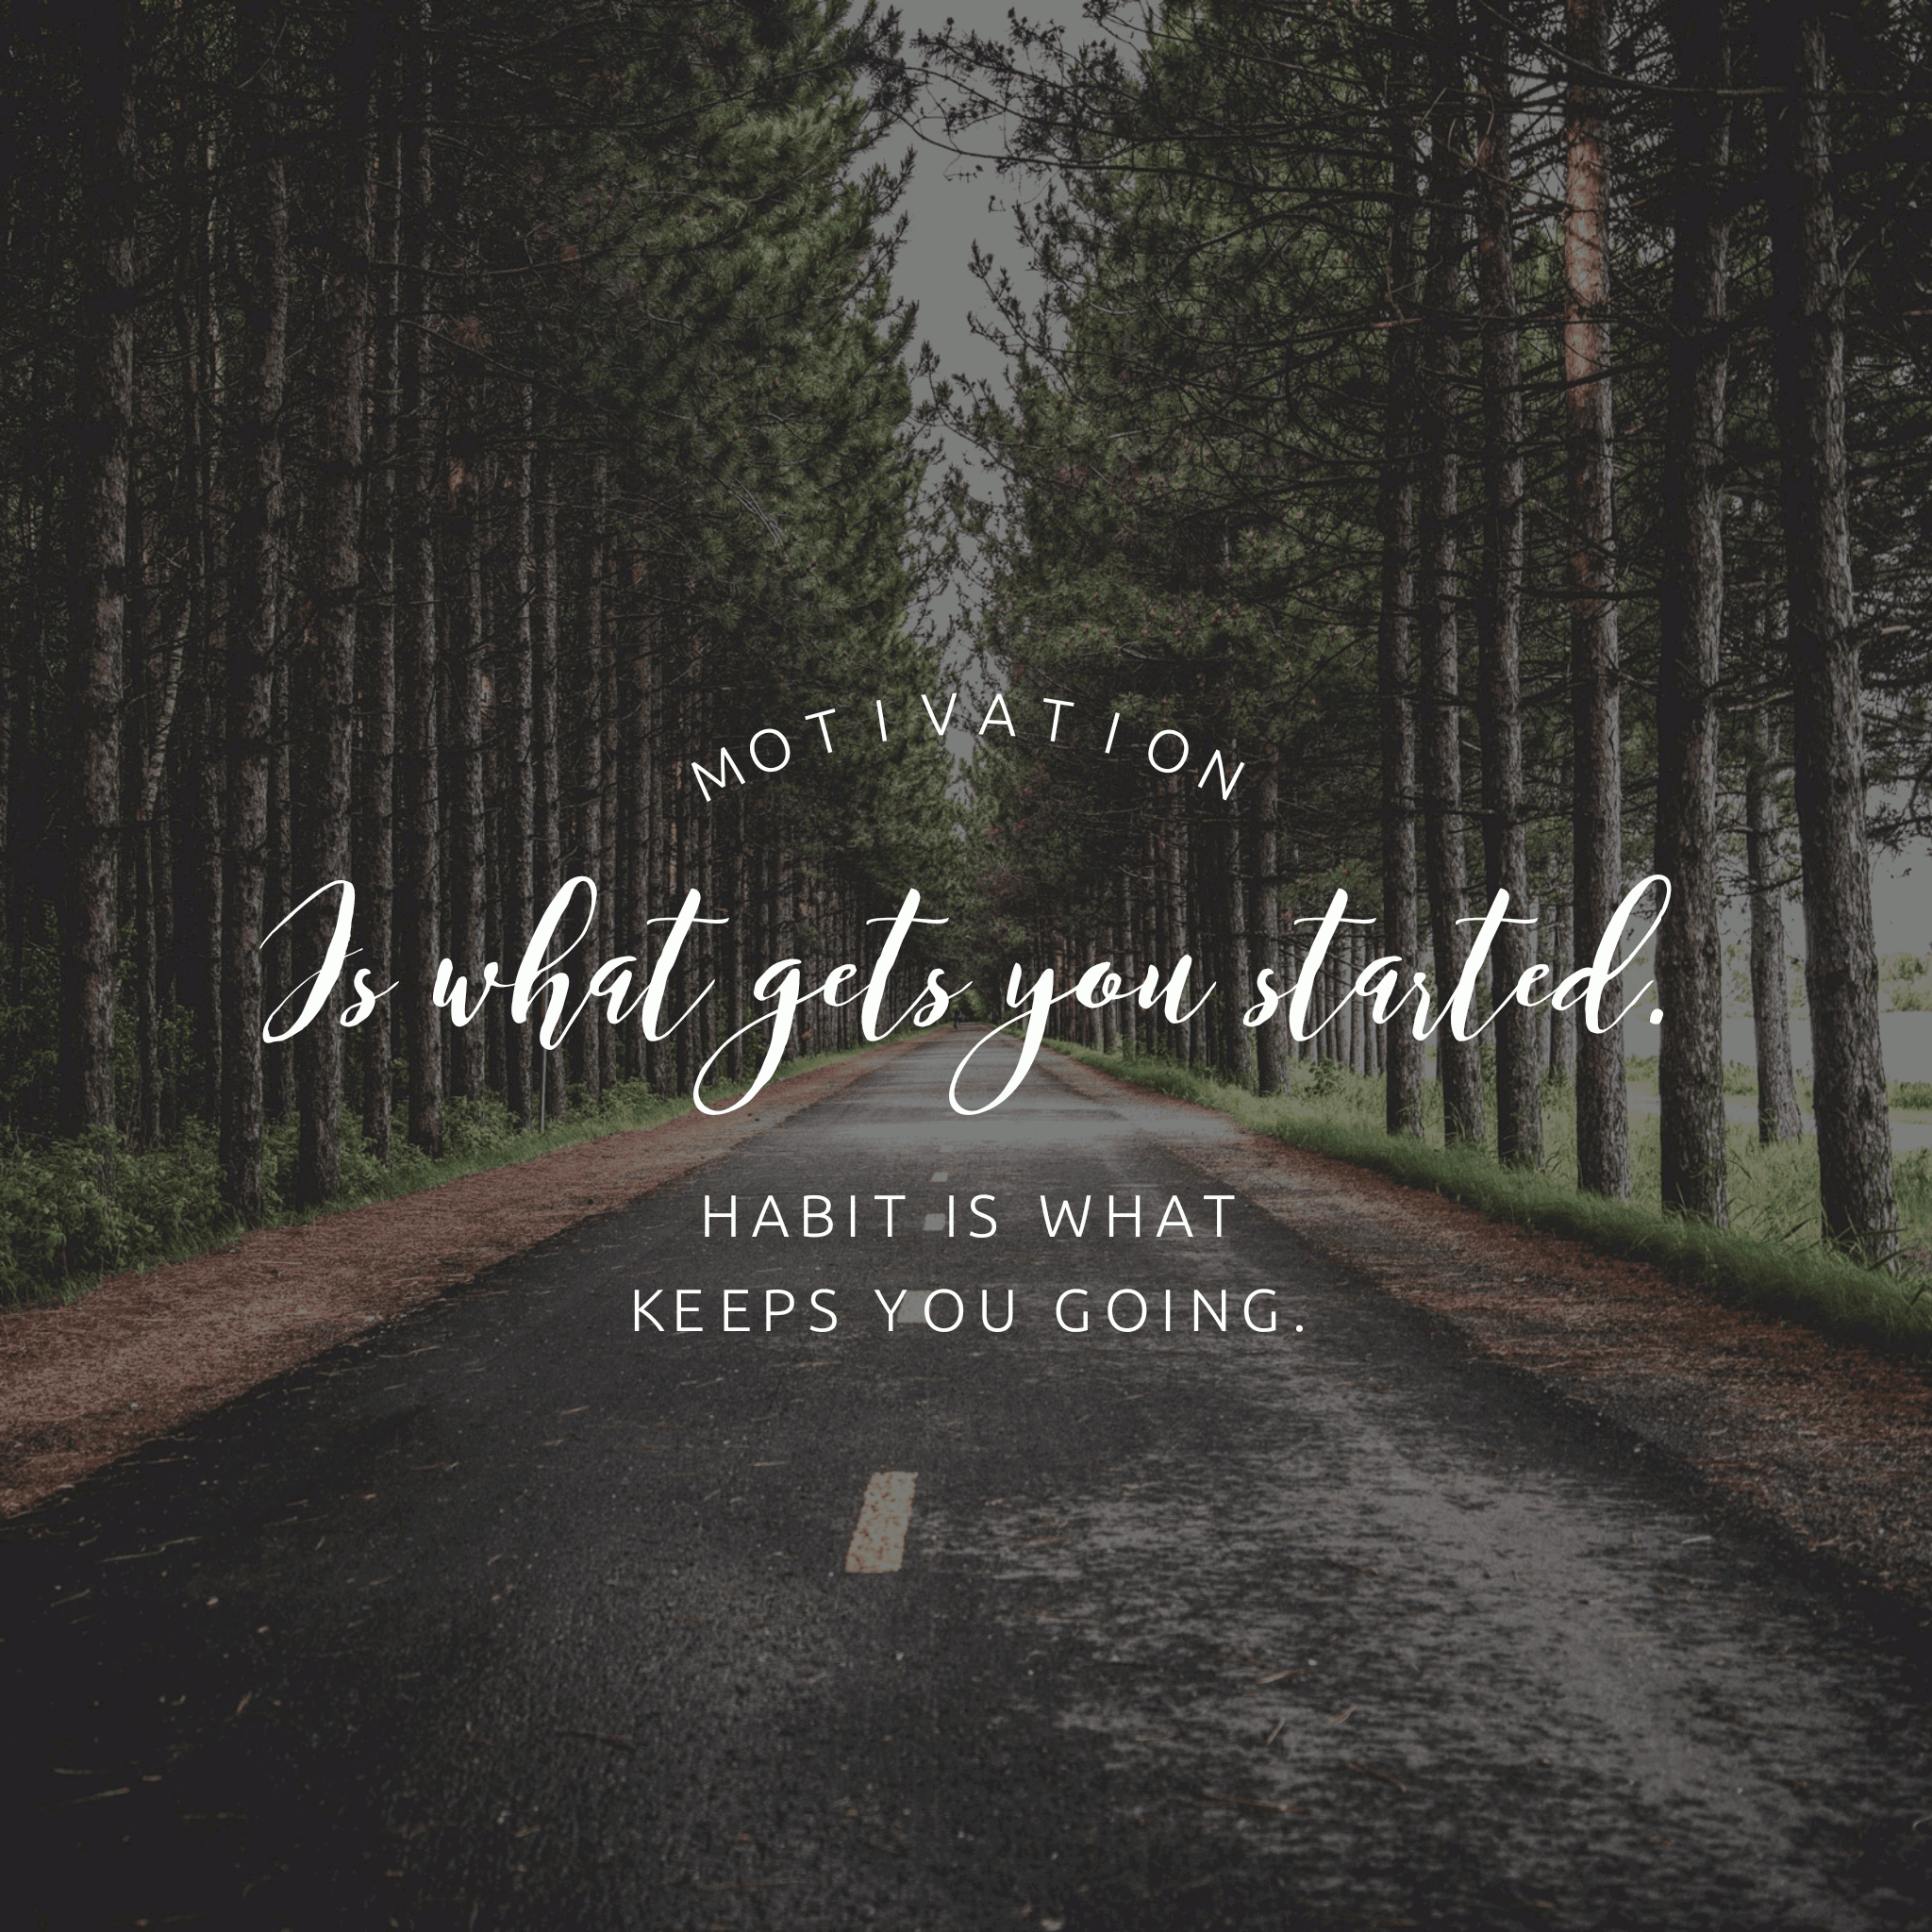 Motivation Is What Gets You Started, Habit Keeps You Going